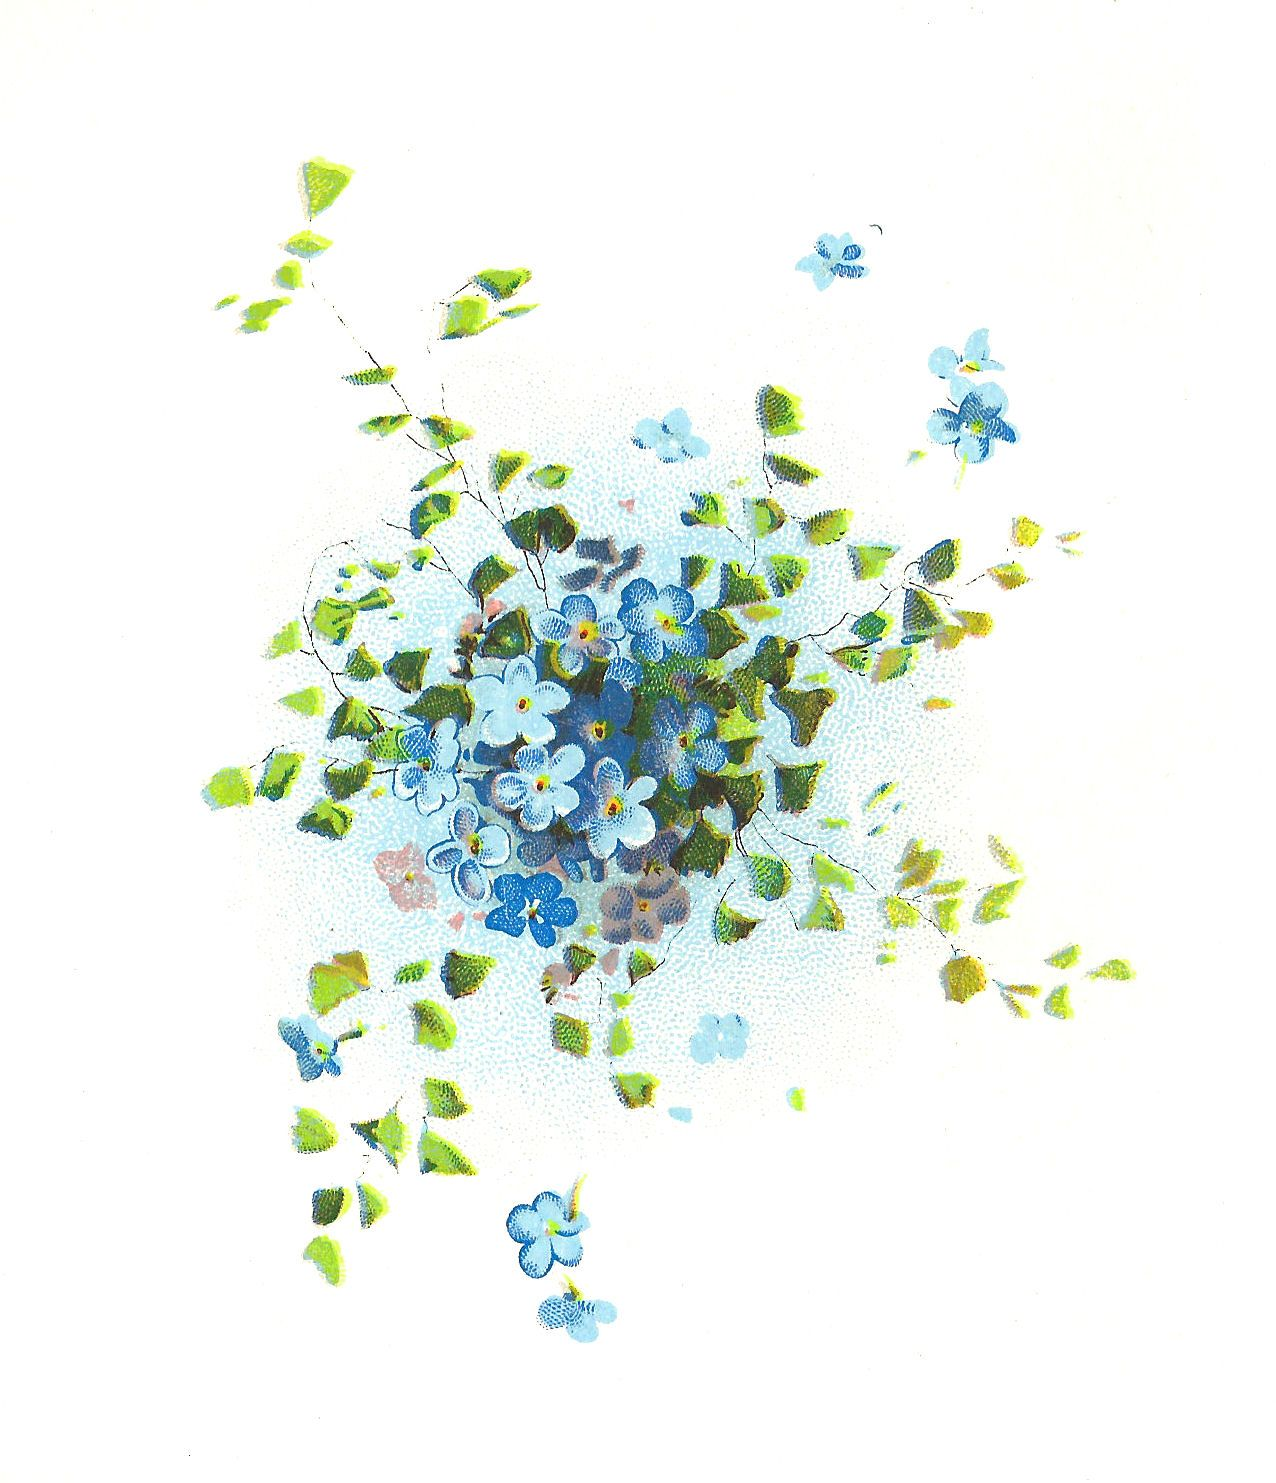 Antique Images: Free Flower Graphic: Forget-Me-Not Flowers Clip Art Cluster with Leaves